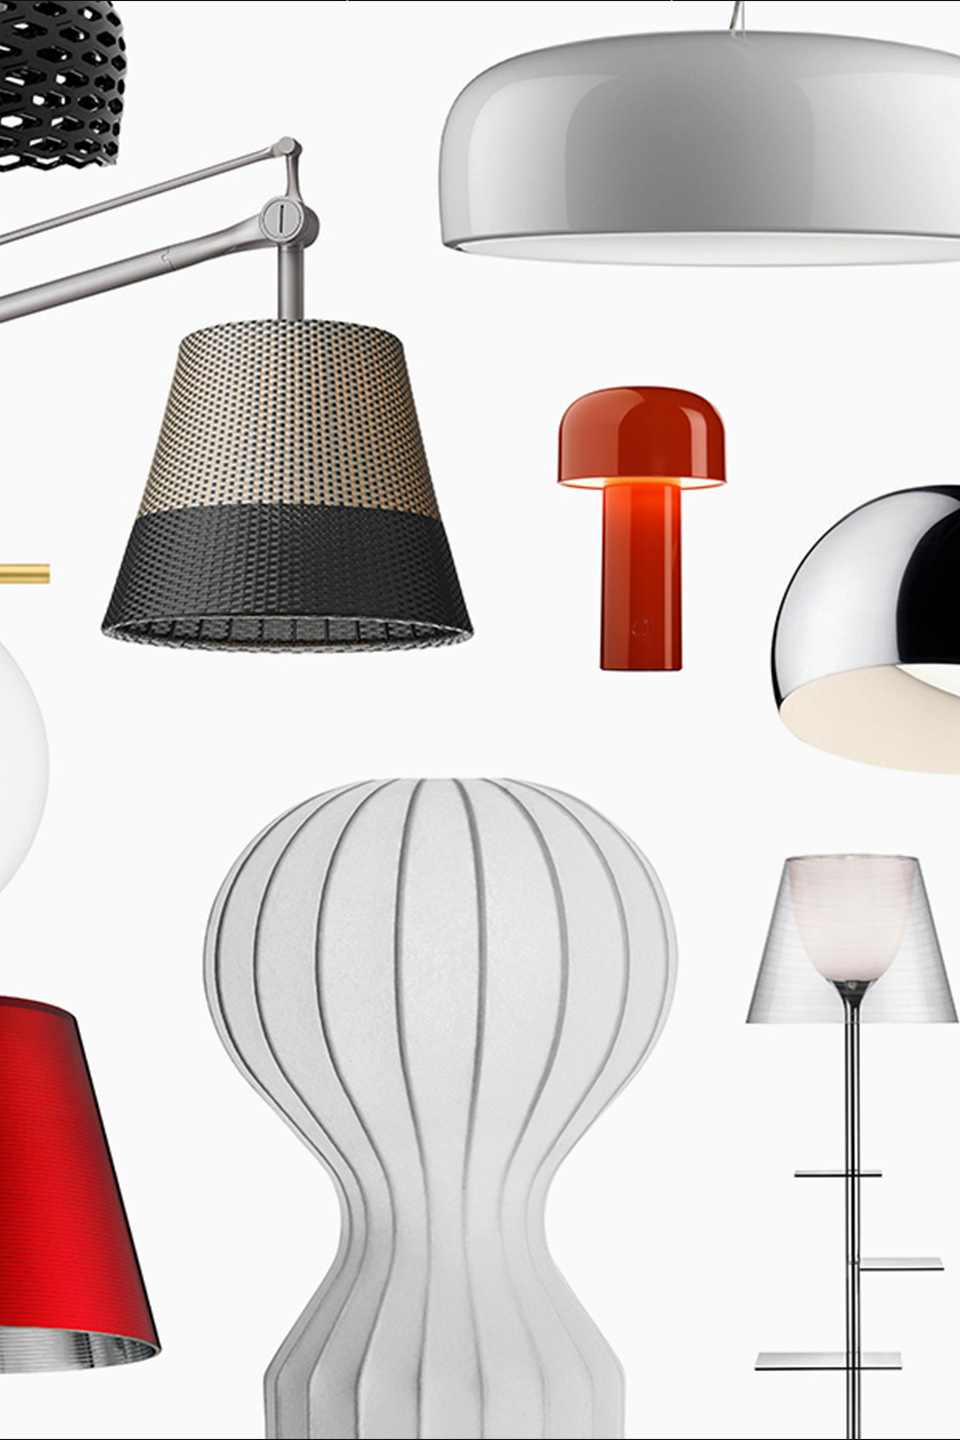 It's Time to Shine a New Light on Legendary Italian Maker FLOS